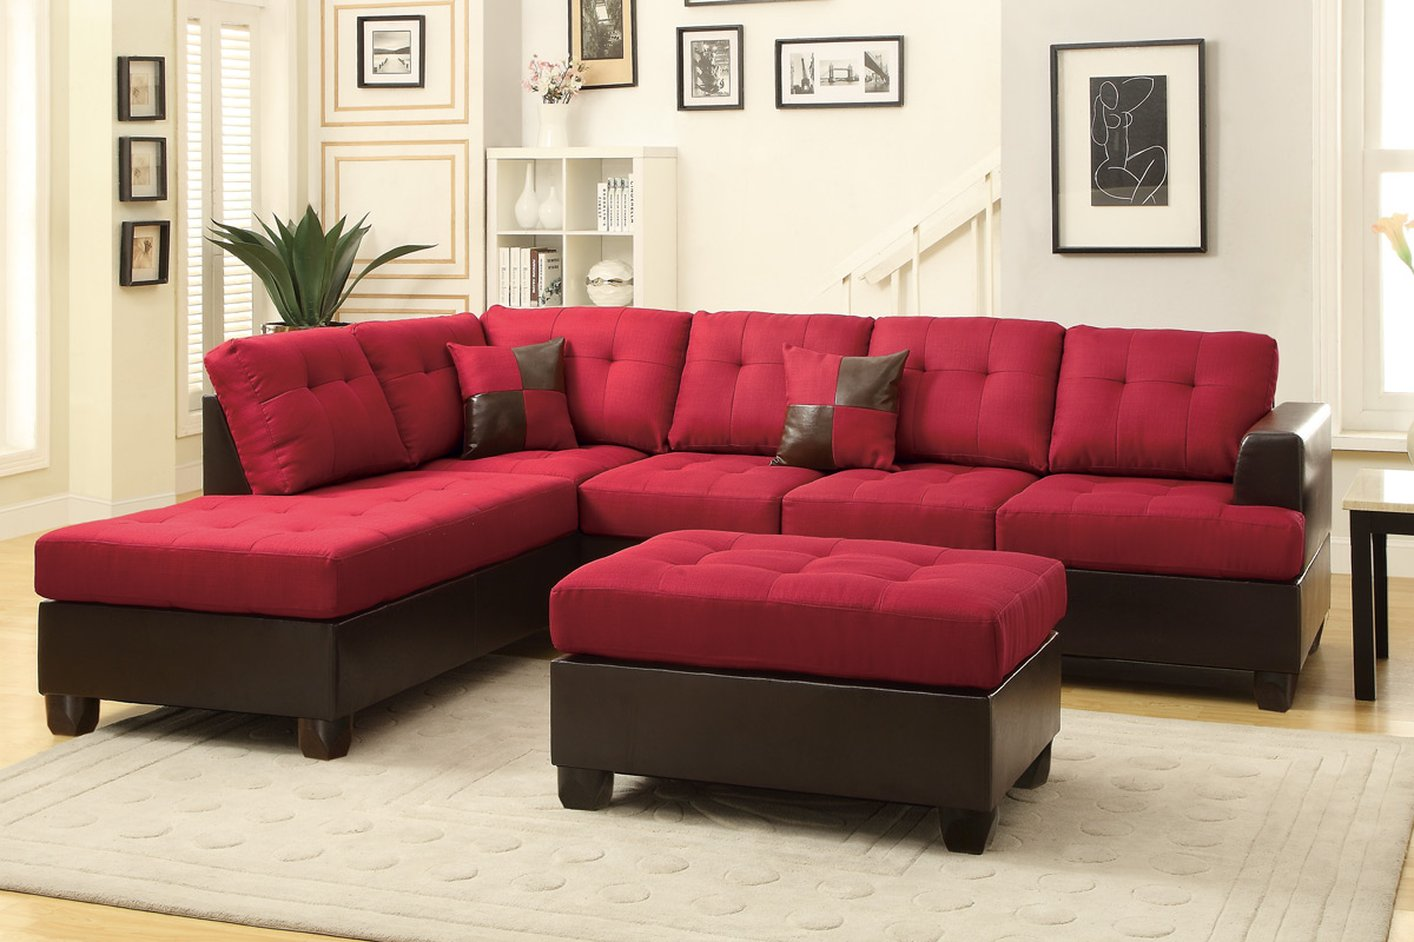 Poundex moss f7601 red fabric sectional sofa and ottoman for 2 piece red sectional sofa